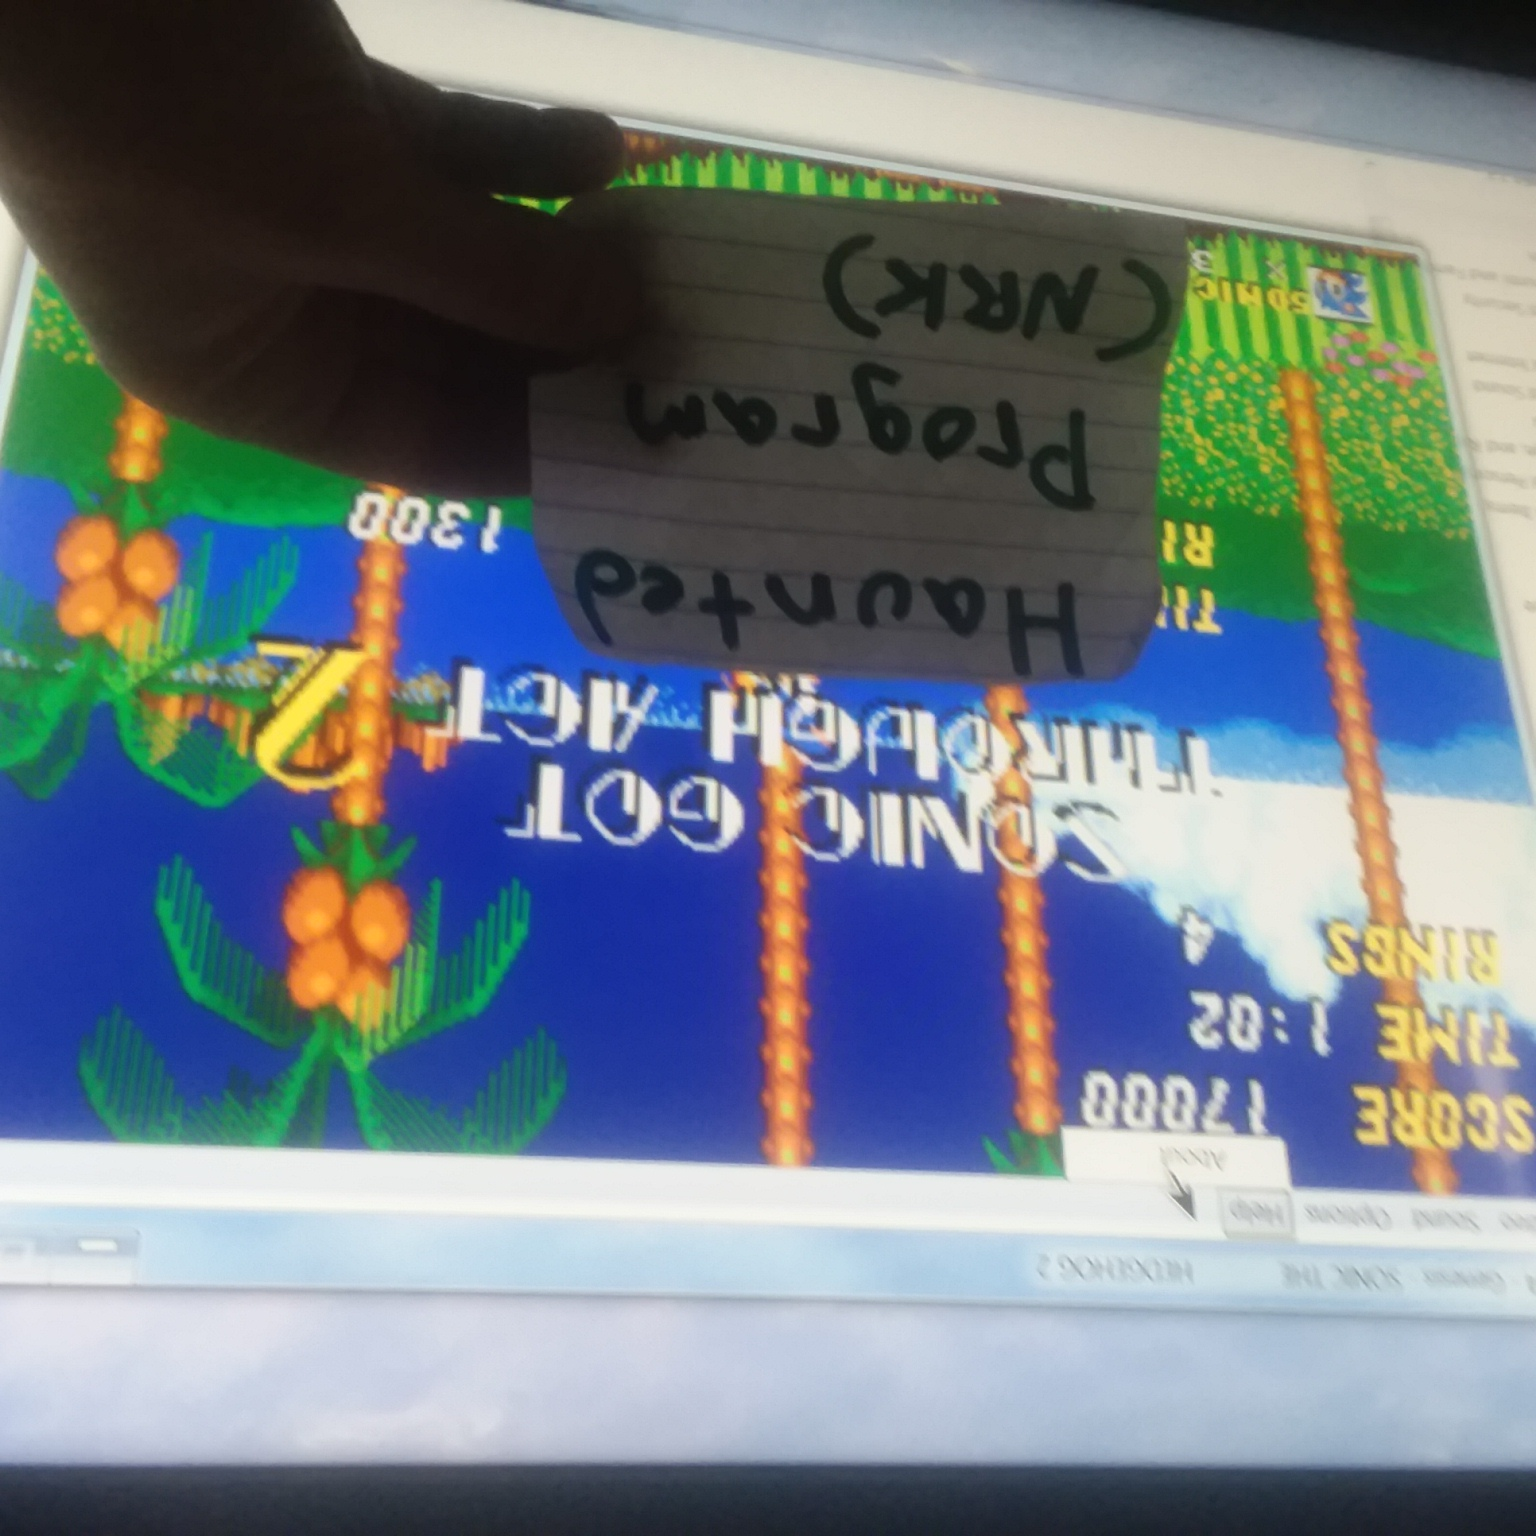 Sonic The Hedgehog 2: Emerald Hill Zone Act 2 [Fastest Time] time of 0:01:02